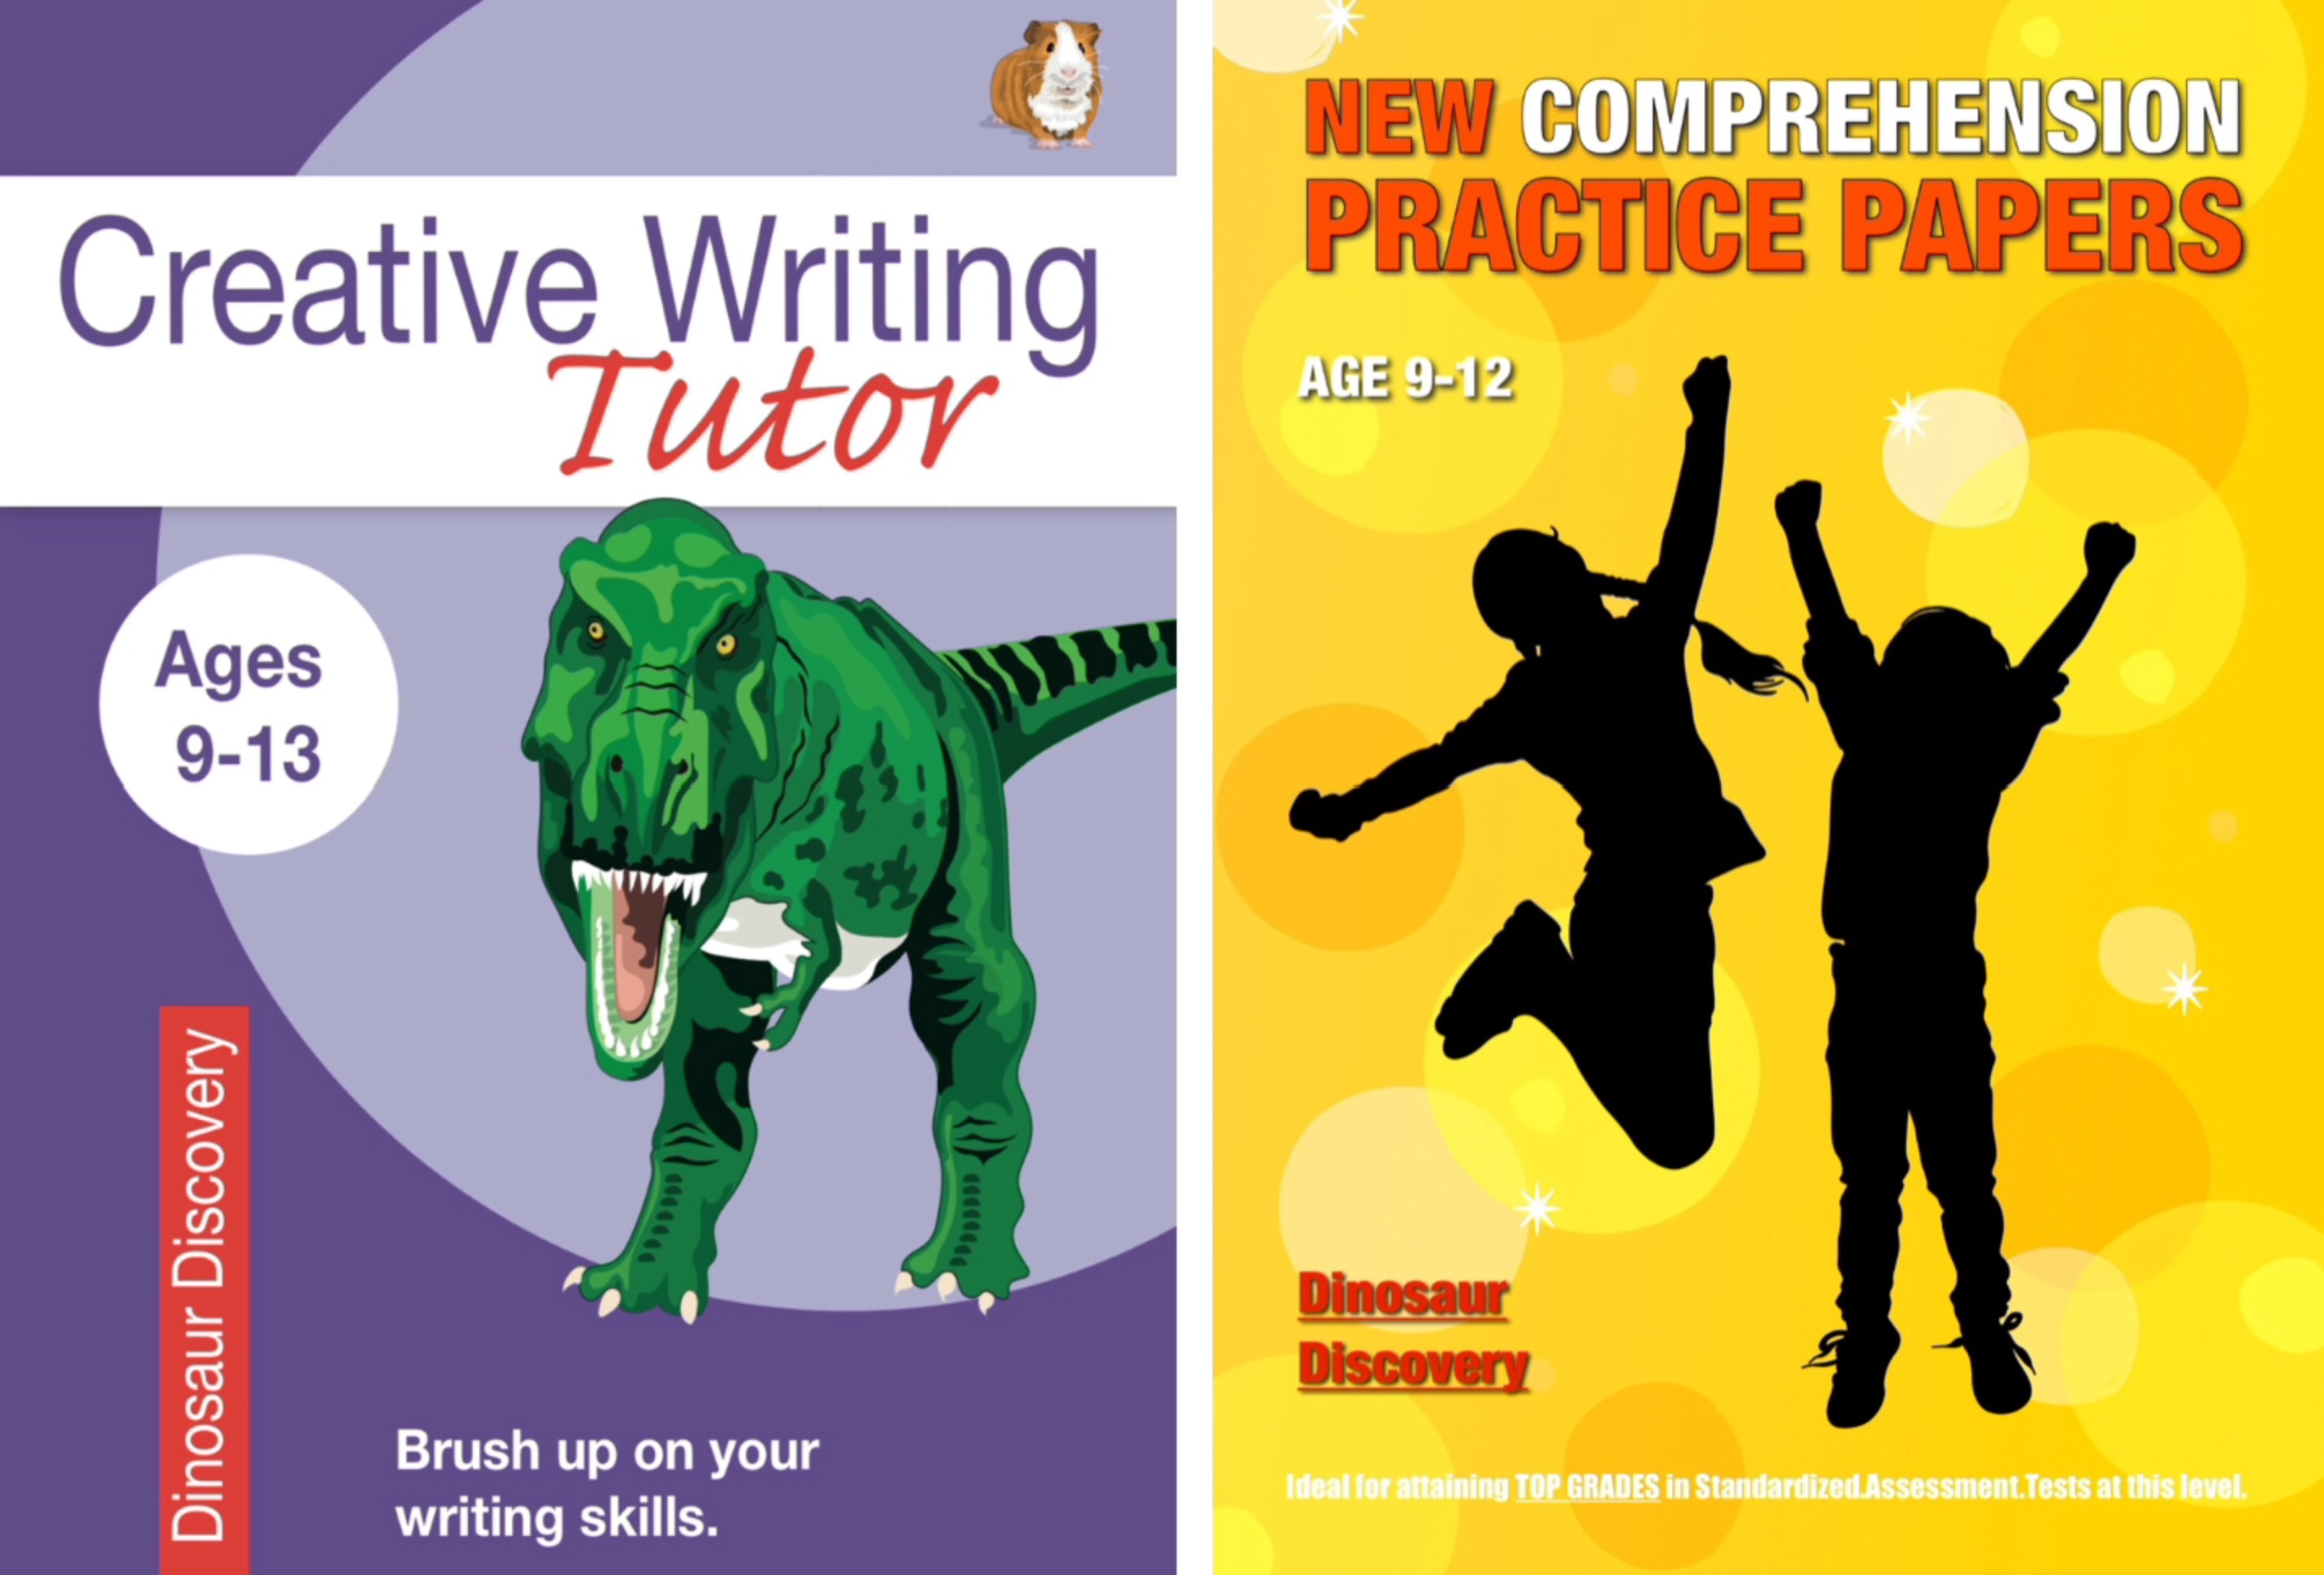 Highly Recommended: Learn Comprehension Skills 'Dinosaur Discovery' 9-12 years